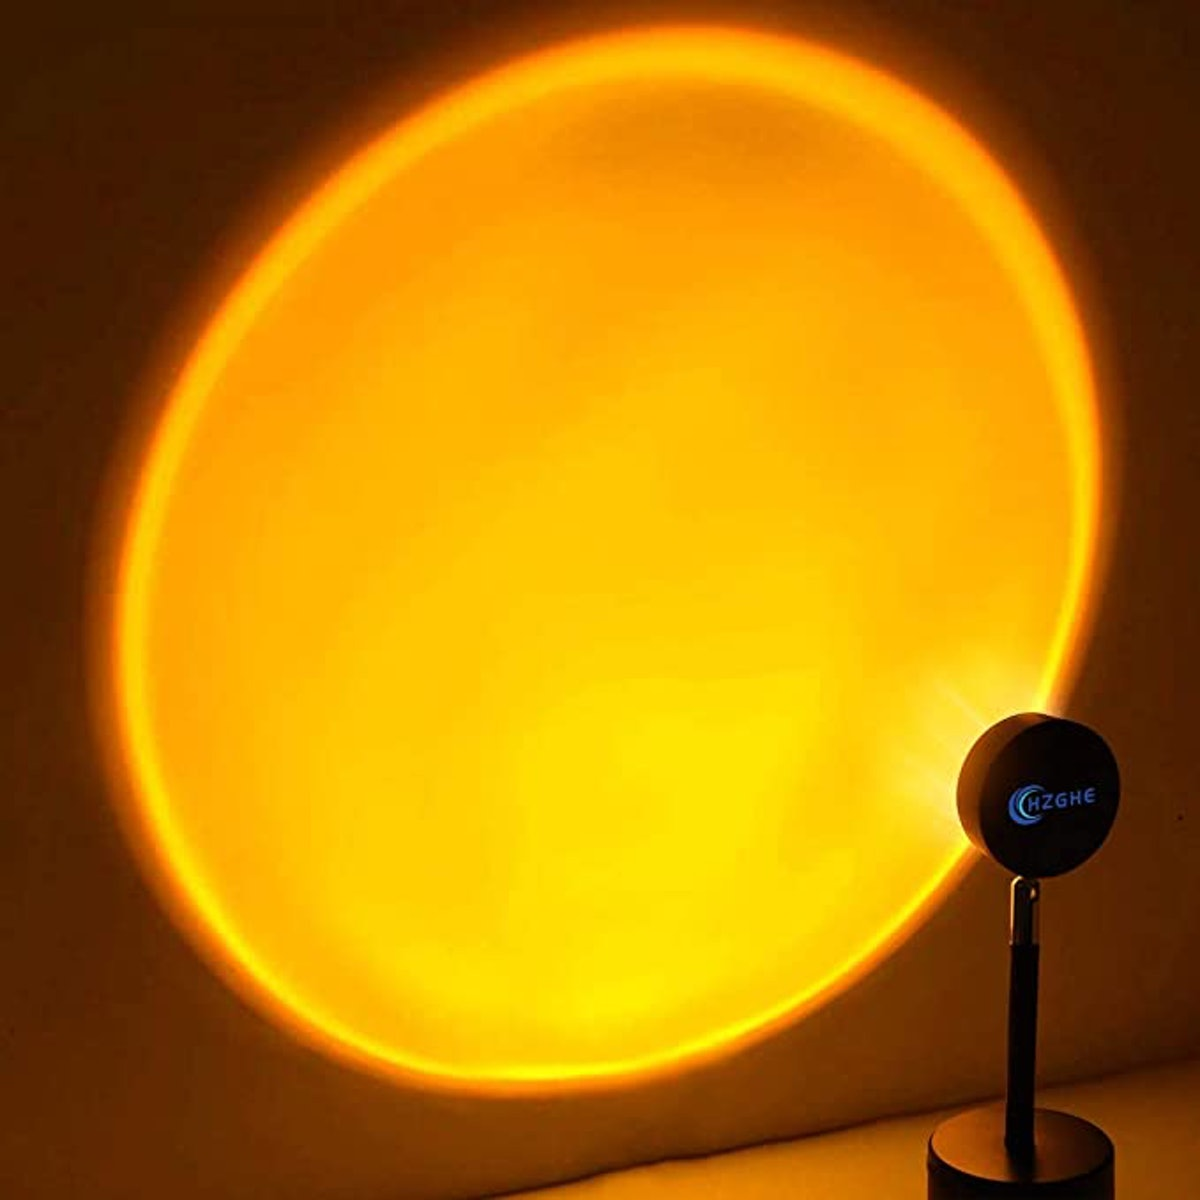 Chzghe Sunset Lamp